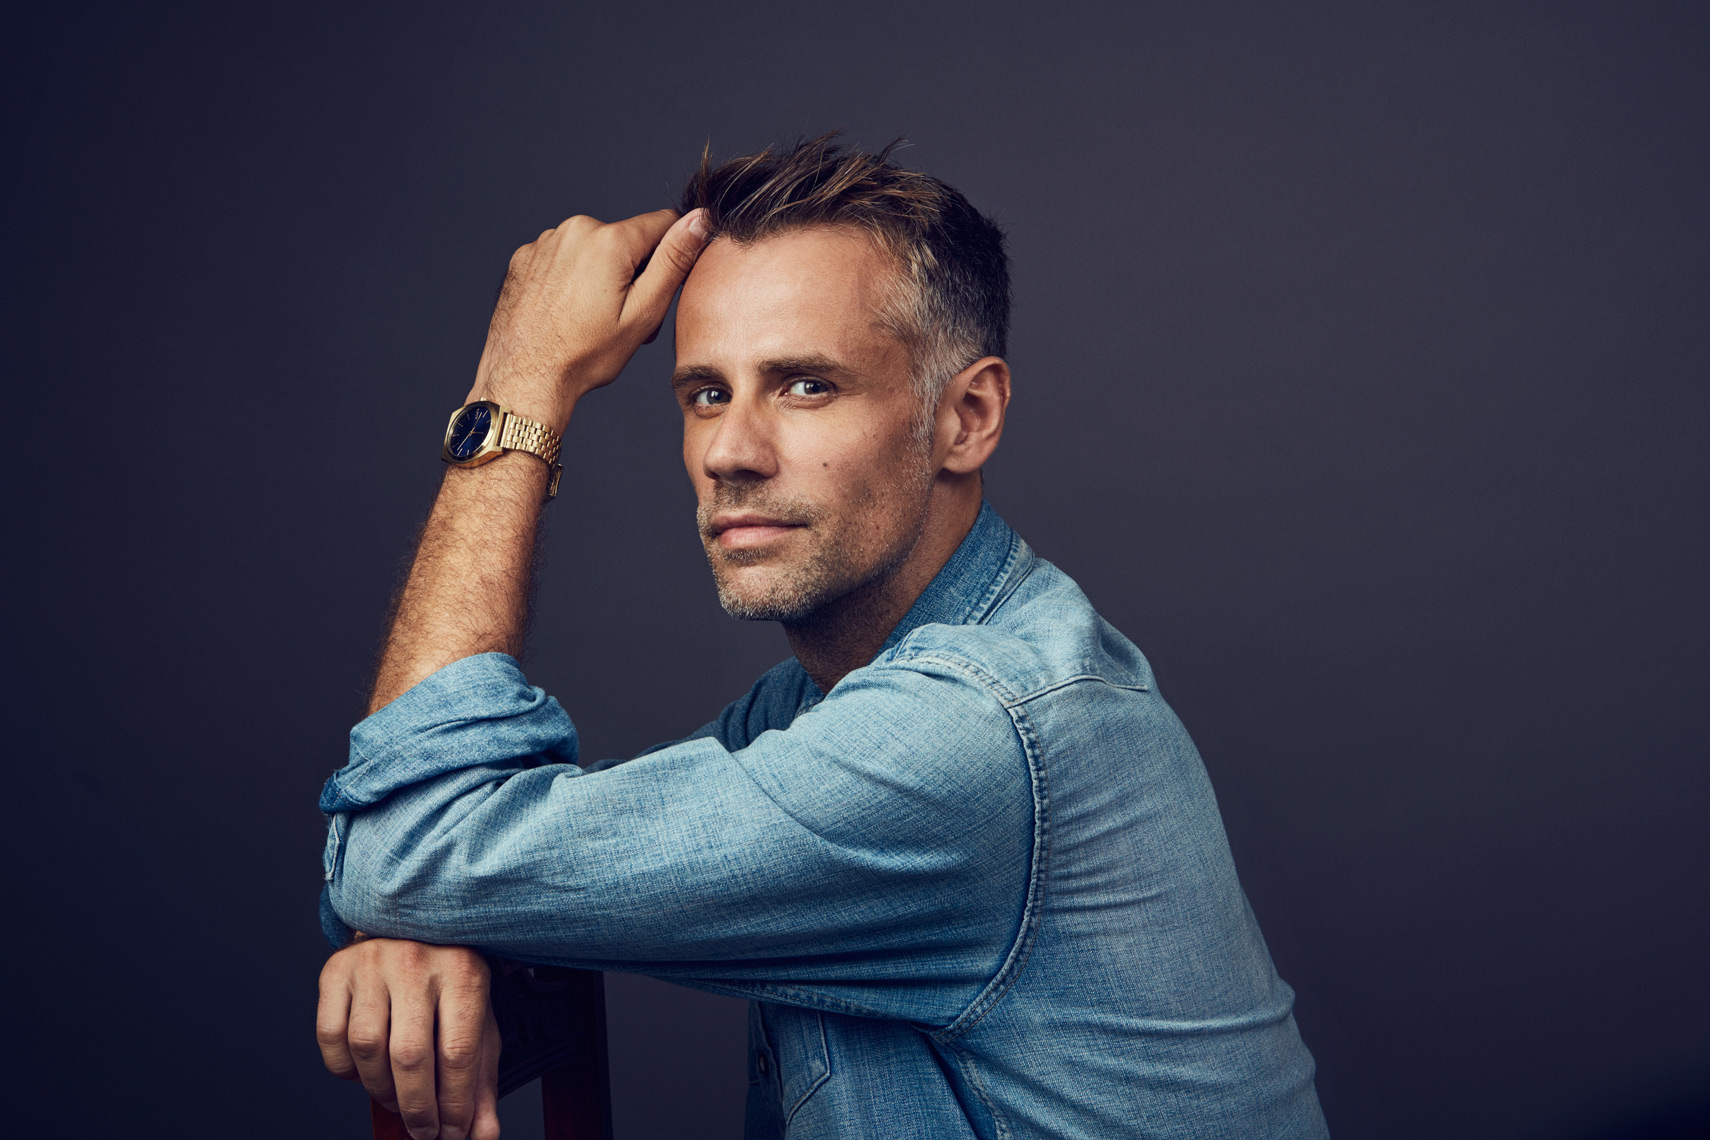 RichardBacon_Shot_33579_FZ